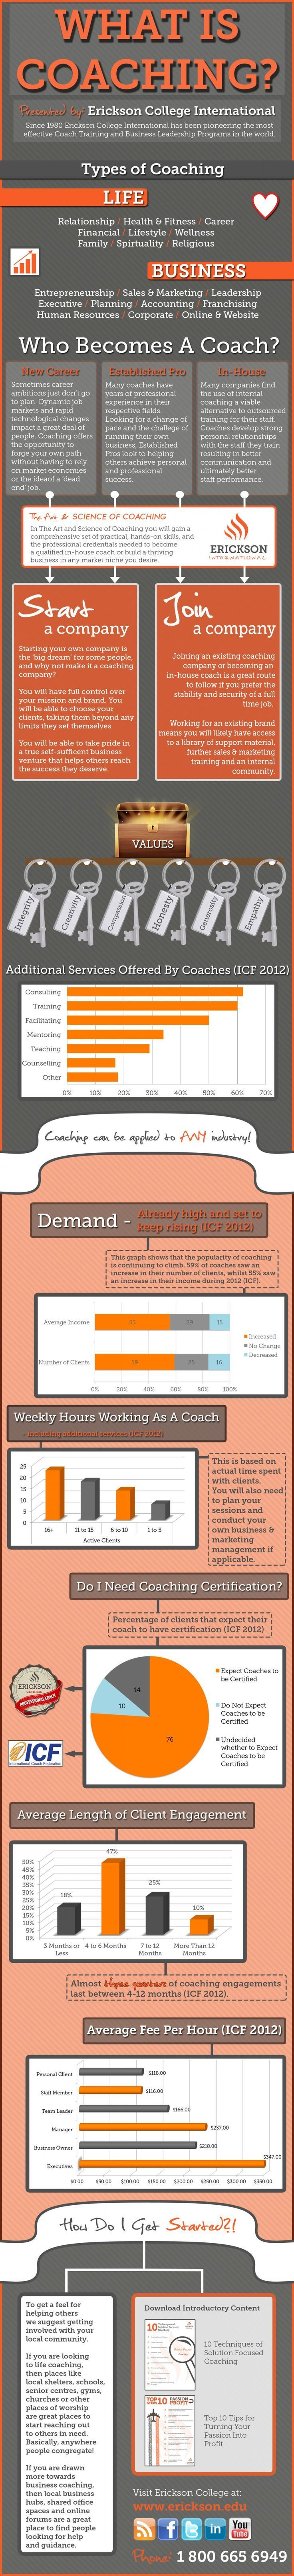 Infographic from Erickson College: What Is Life & Business Coaching? Who becomes a coach? And more... - women's handbags on sale, accessories for handbags, women's handbags - stores that sell purses, small ladies purse, handbag design *ad